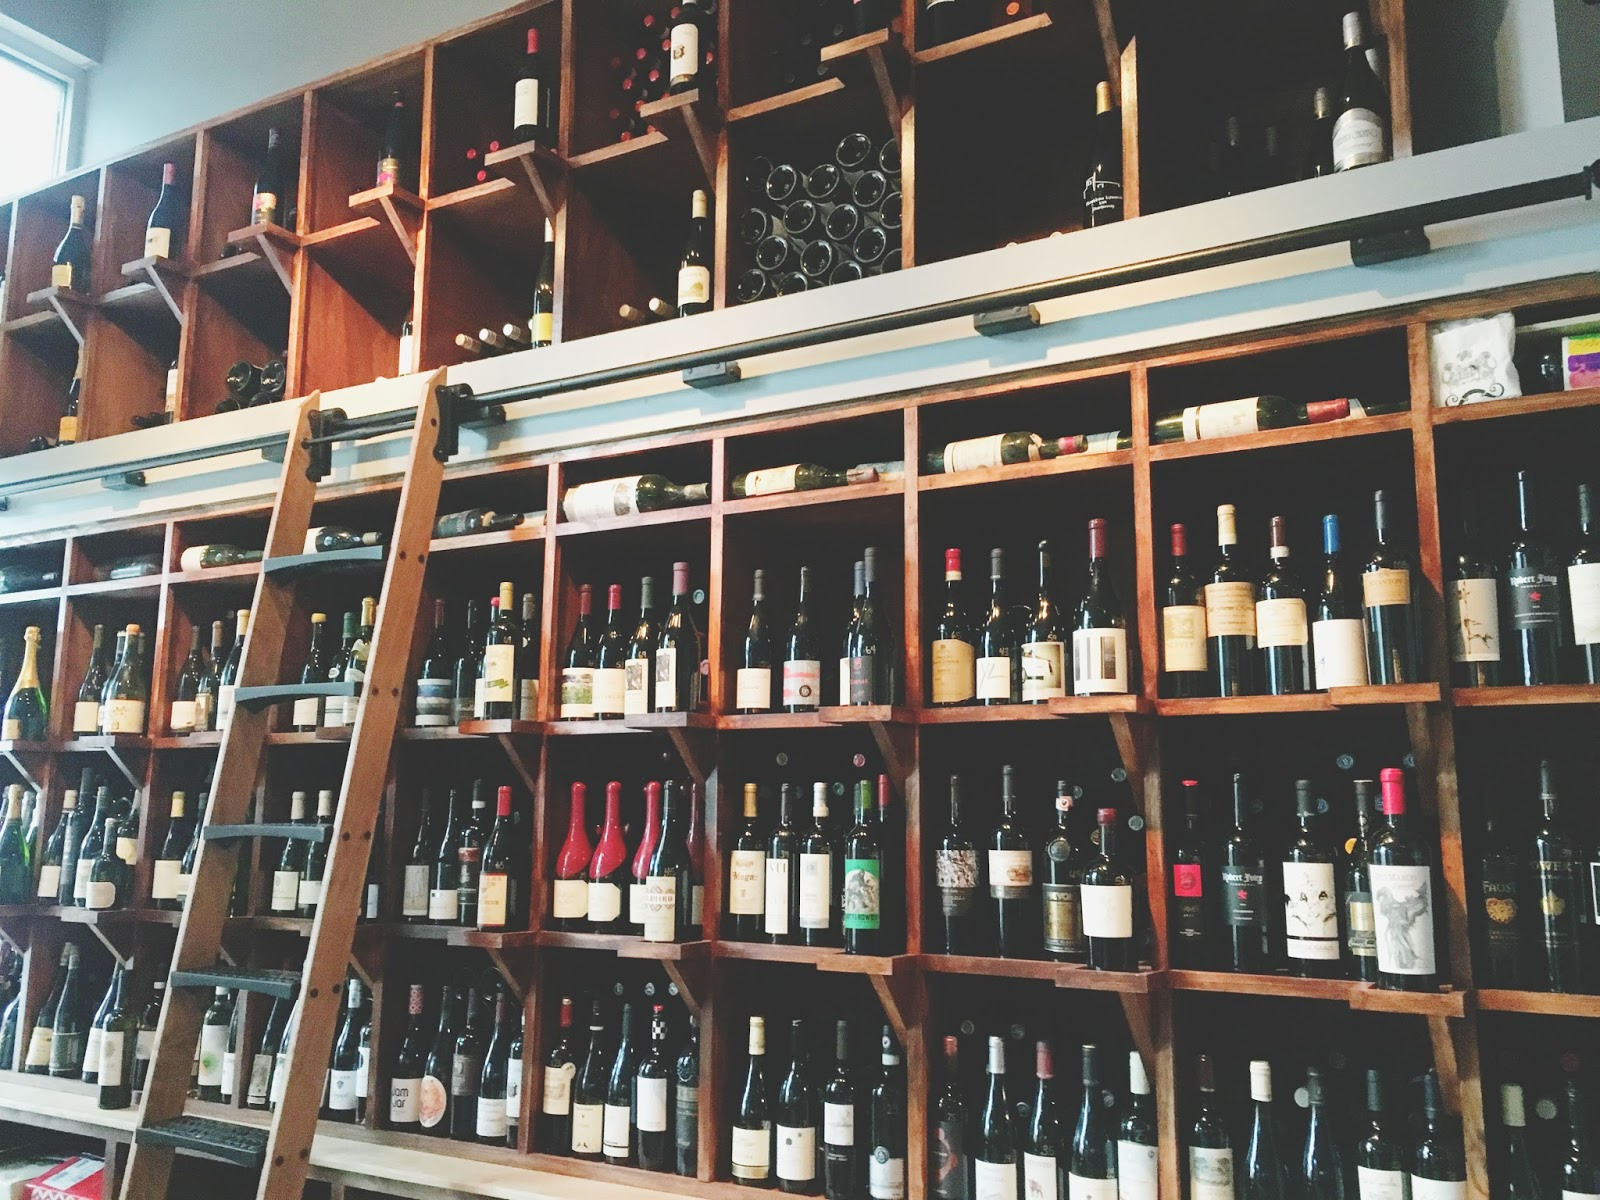 Wine & Company - a wine bar in Charleston, South Carolina